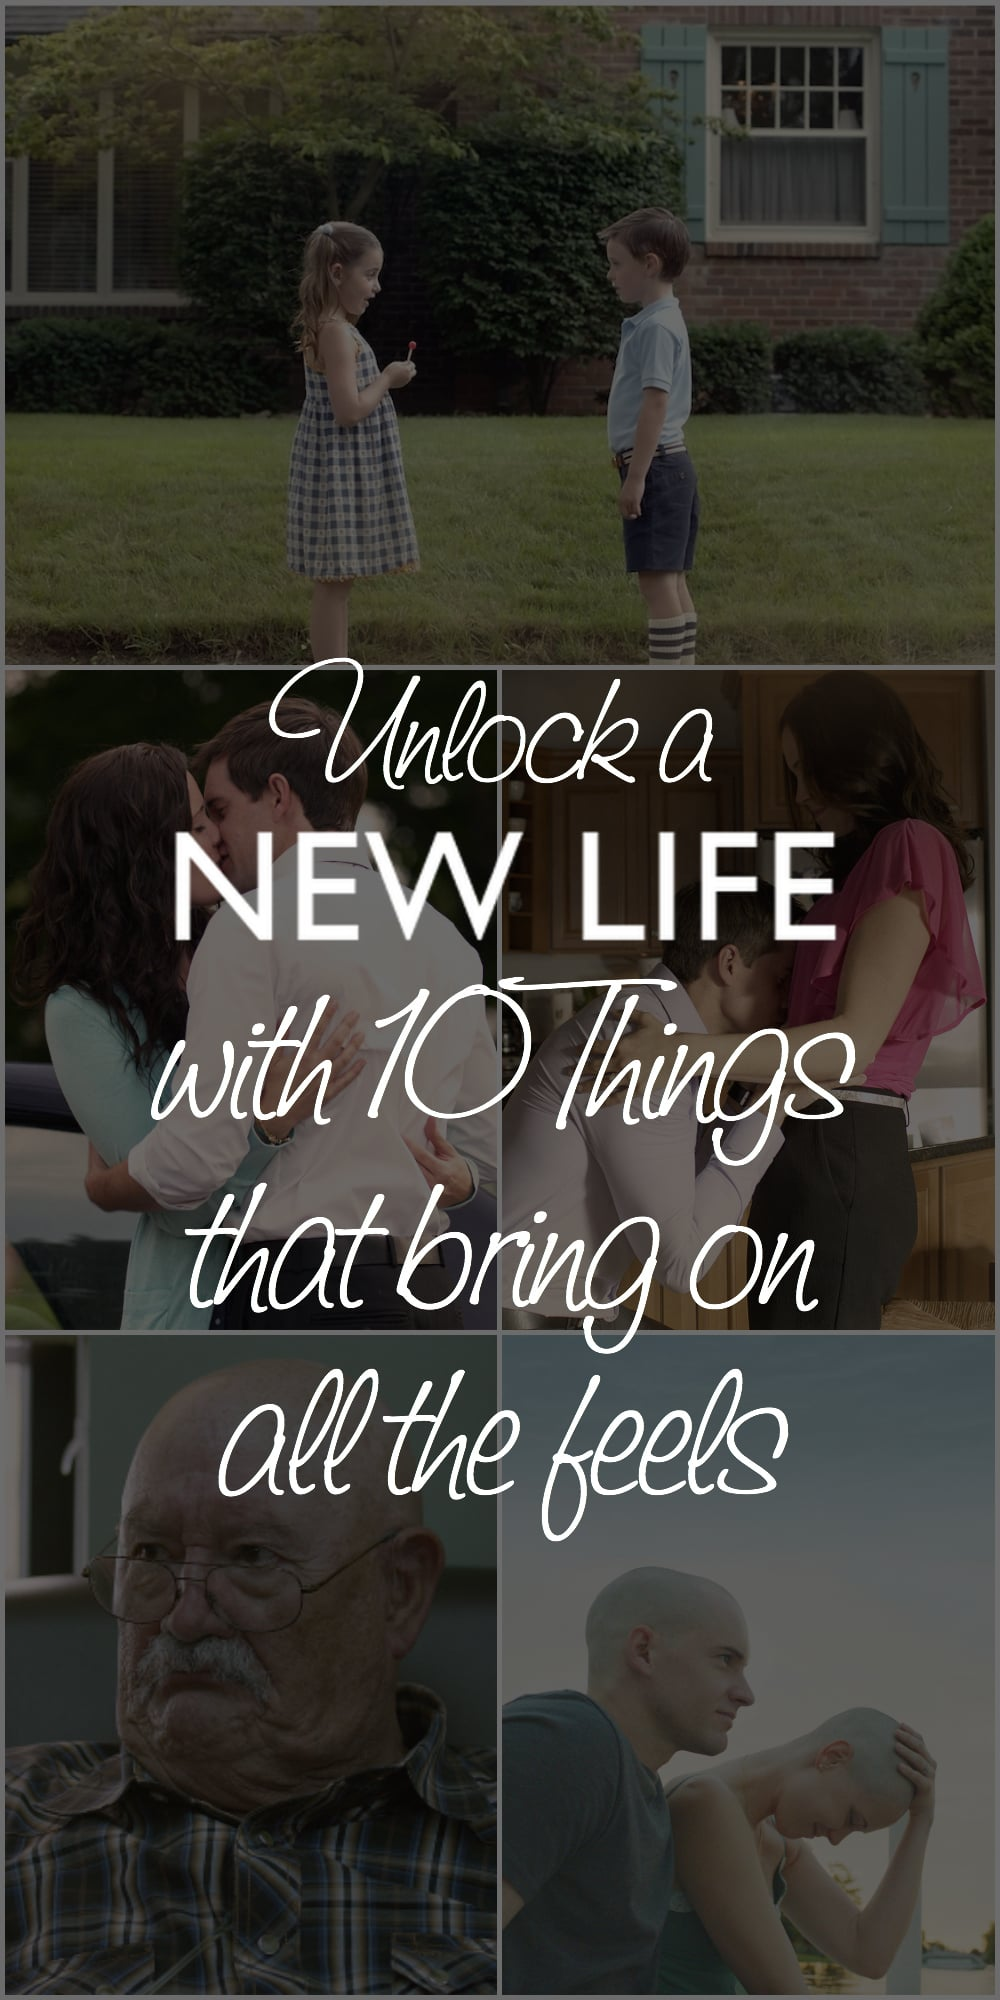 Can't wait to watch #NewLifeMovie and feel every bit of what it means to be alive. #AllTheFeels